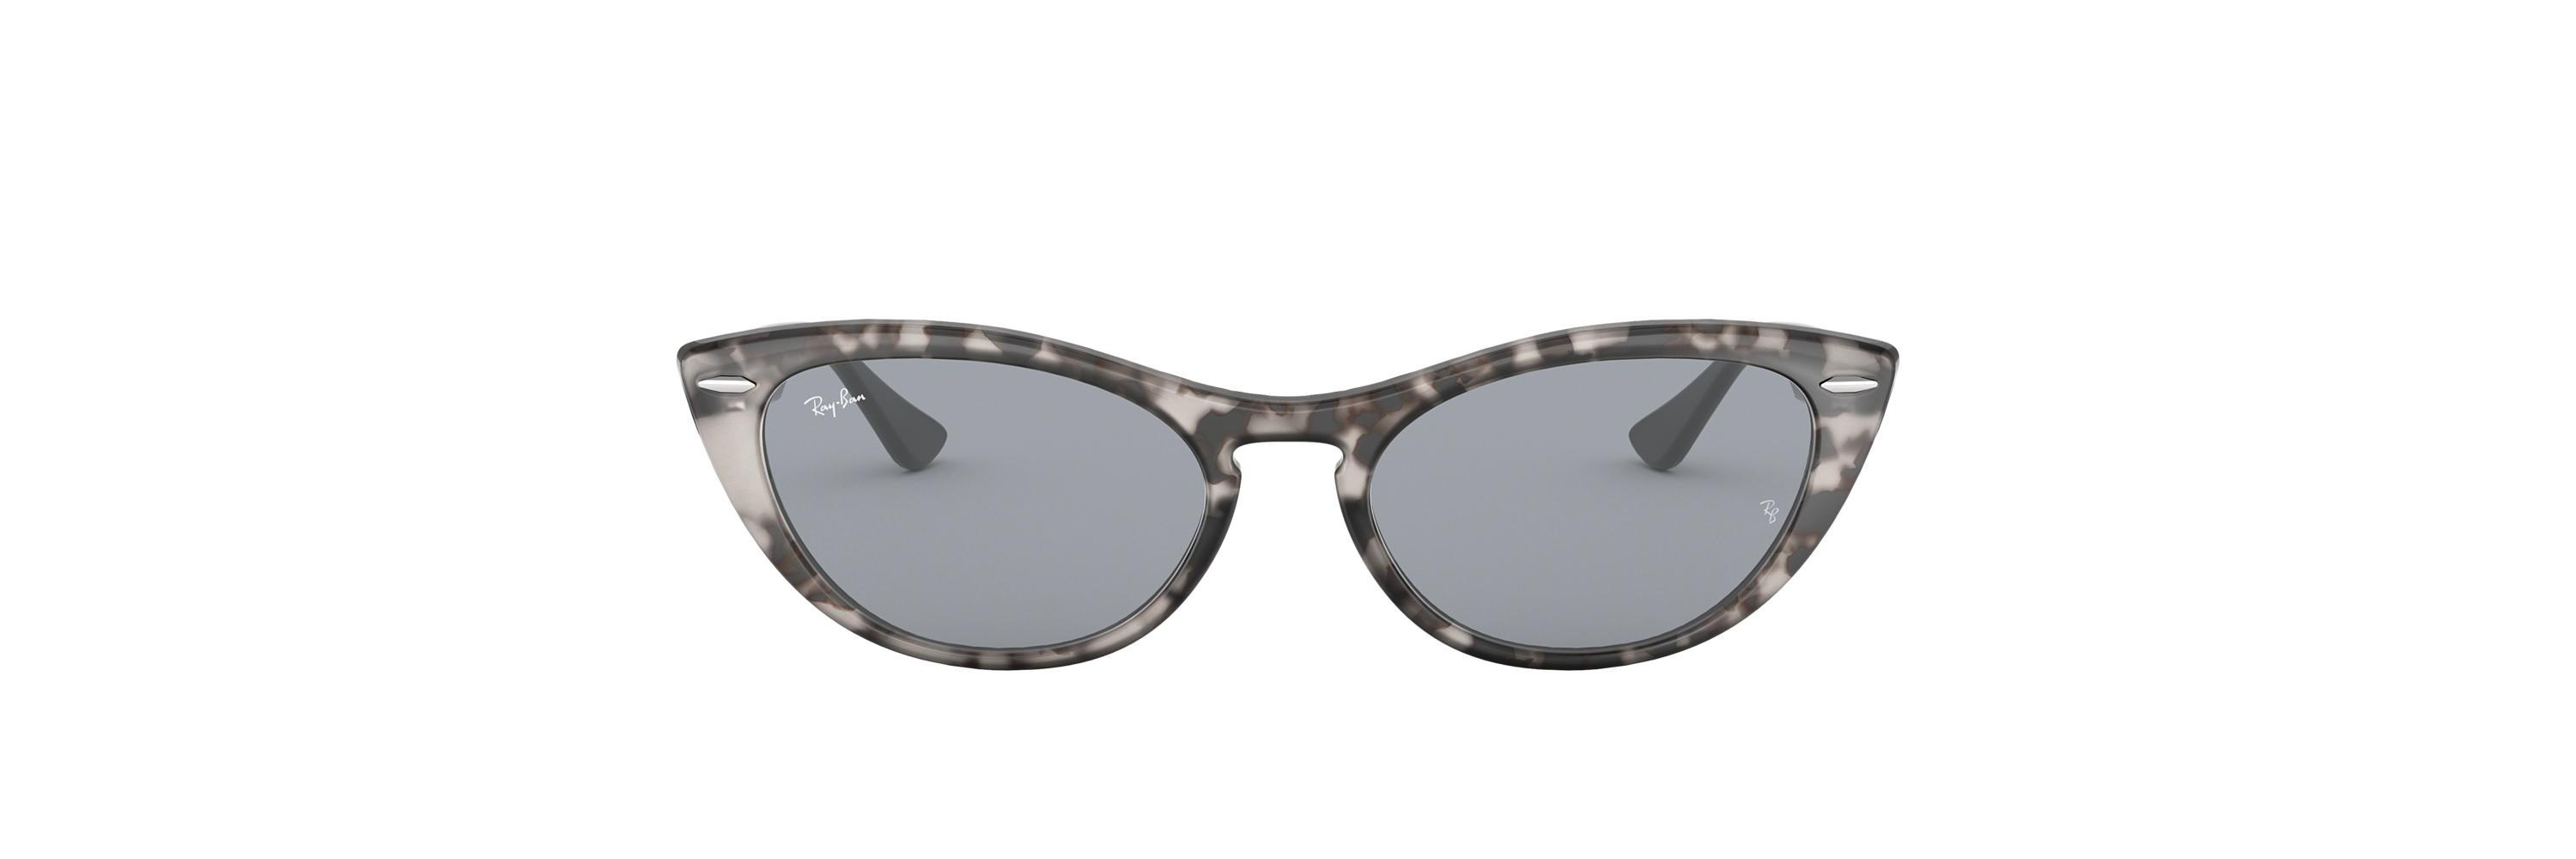 cf92d8b8604 Gallery. Previously sold at  Sunglass Hut · Women s Ray Ban ...